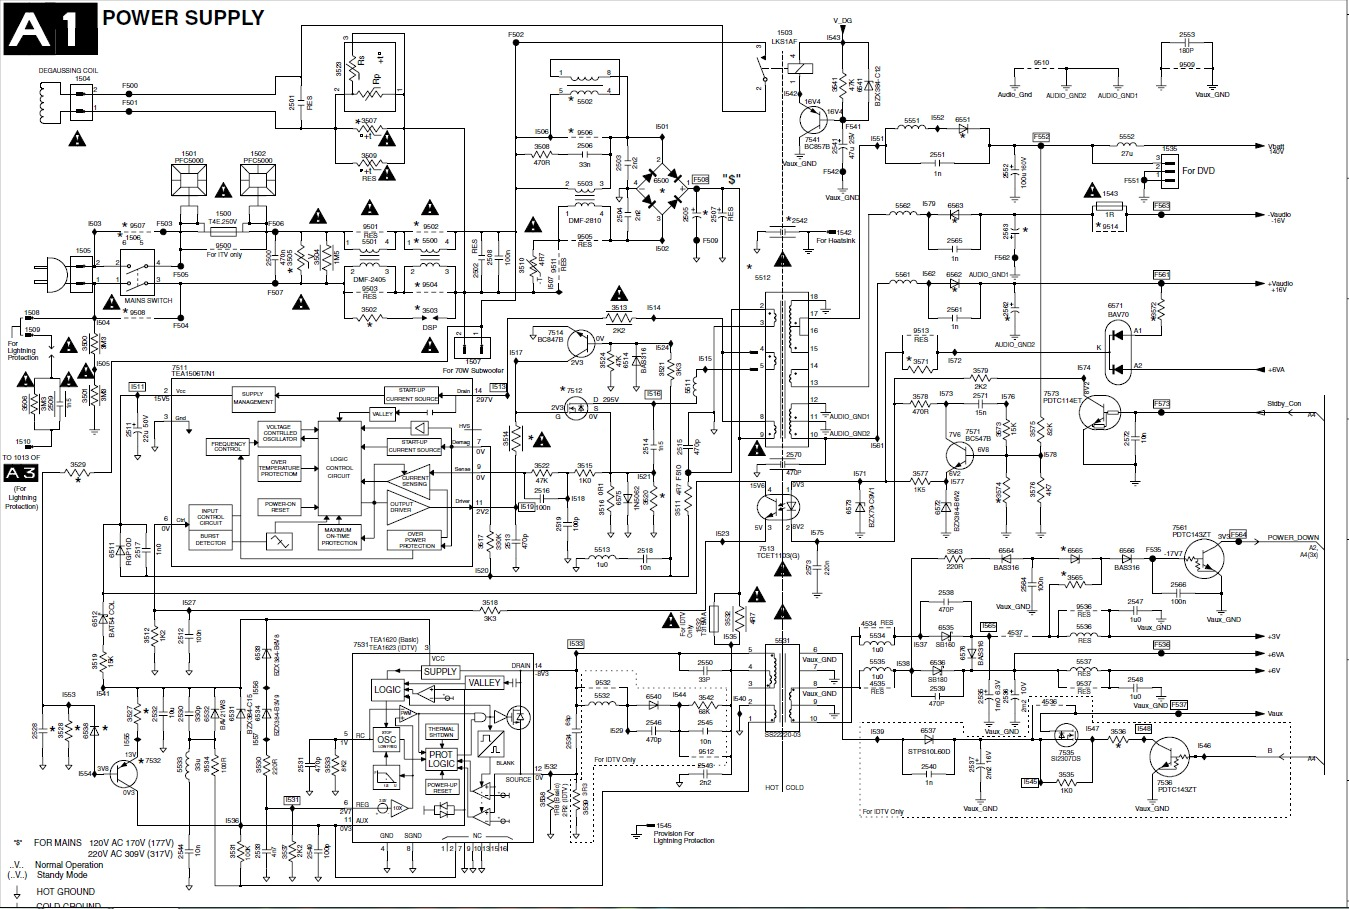 PHILIPS power supply 29pt6447.png Diagramas de Televisores